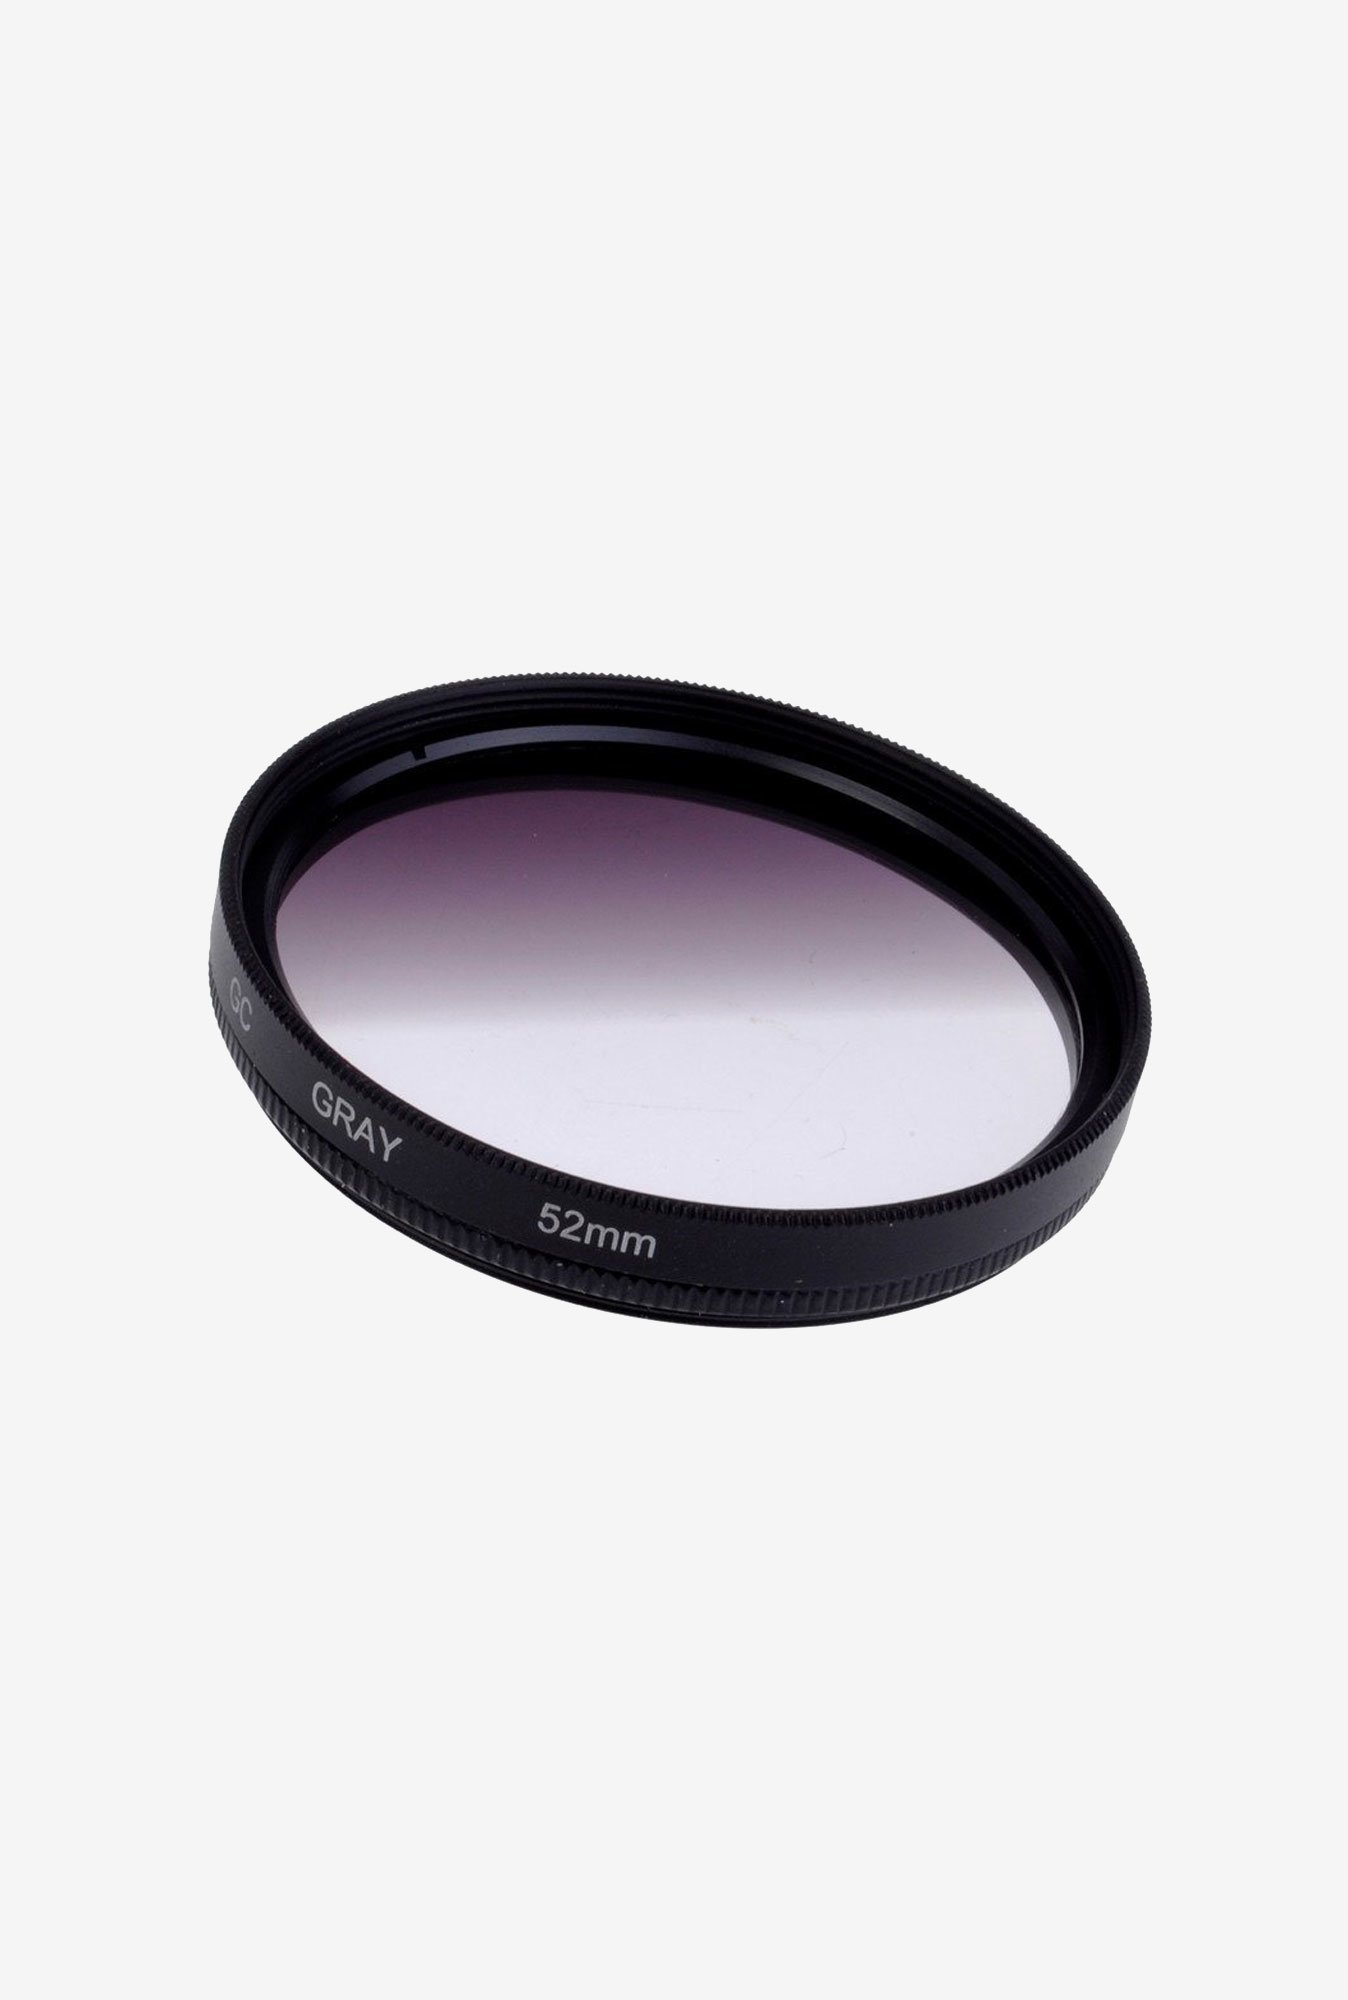 Neewer 52mm Neutral Grey Gradual ND-Grads Filter (Black)